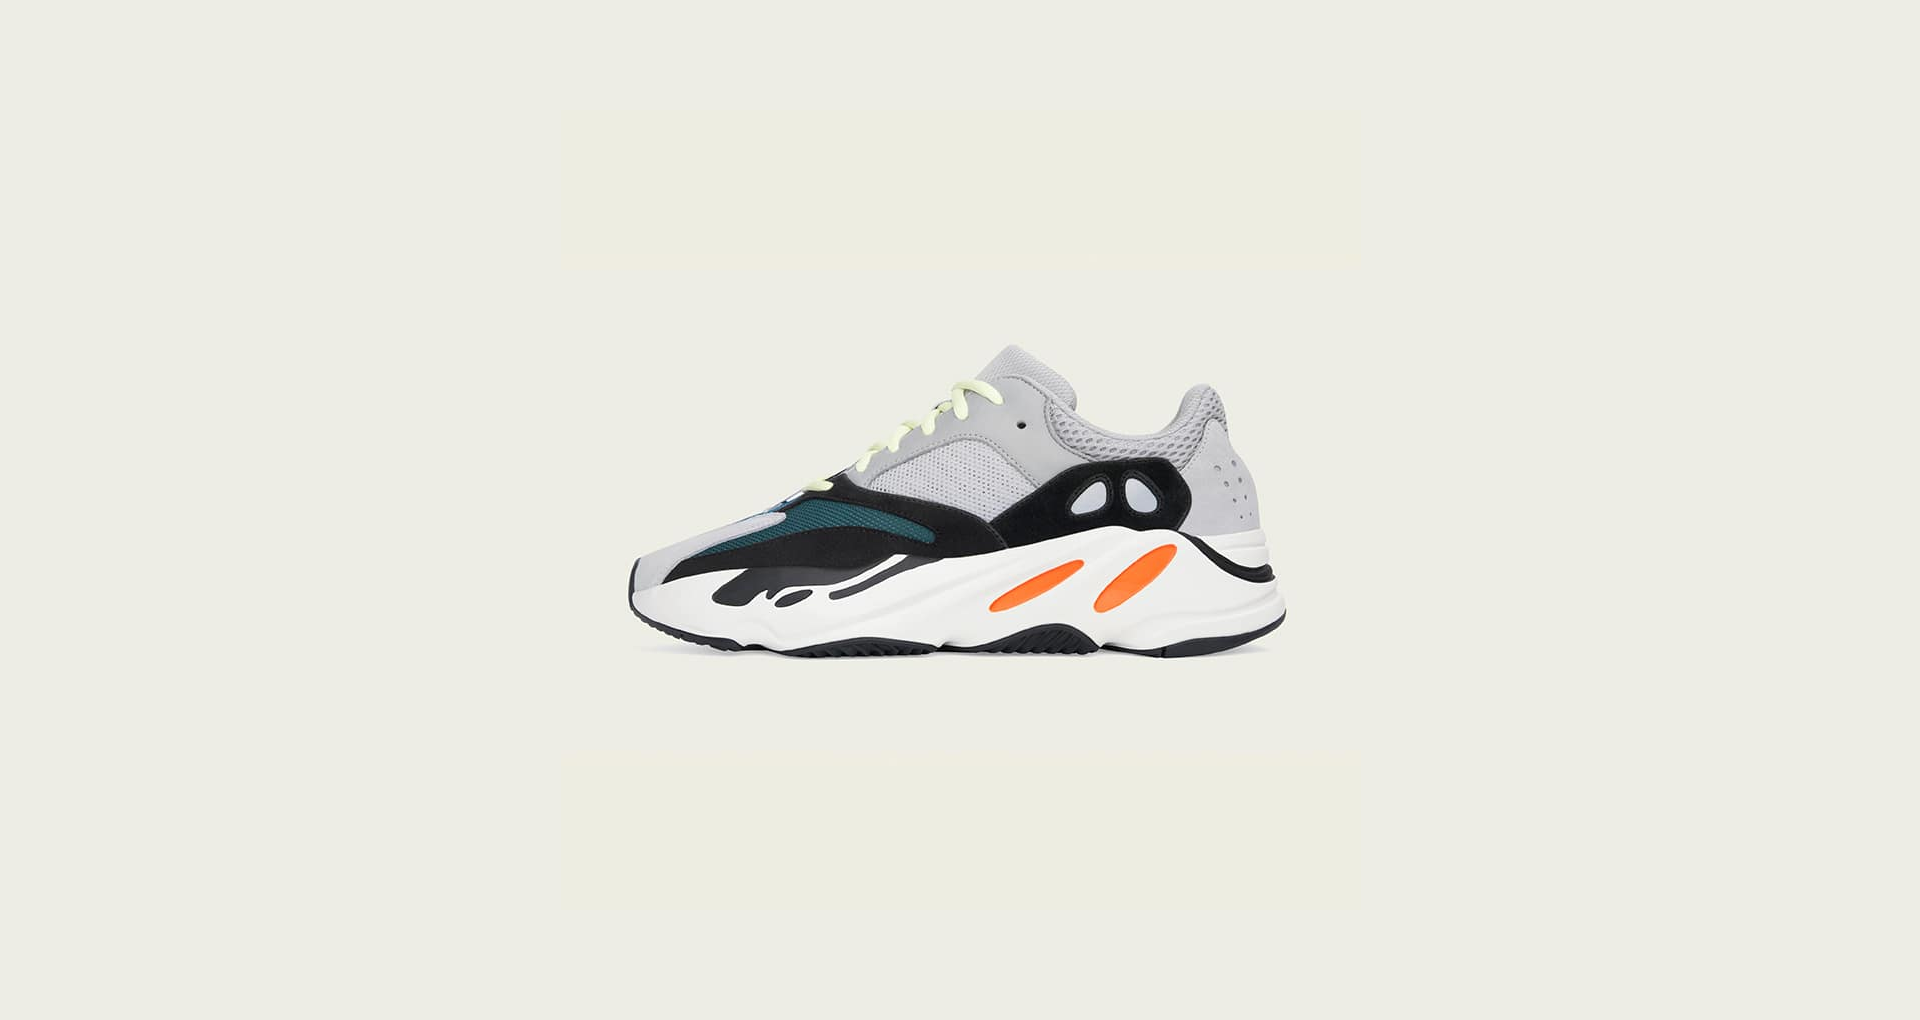 B75571 adidas YEEZY Boost 700 Wave Runner 1